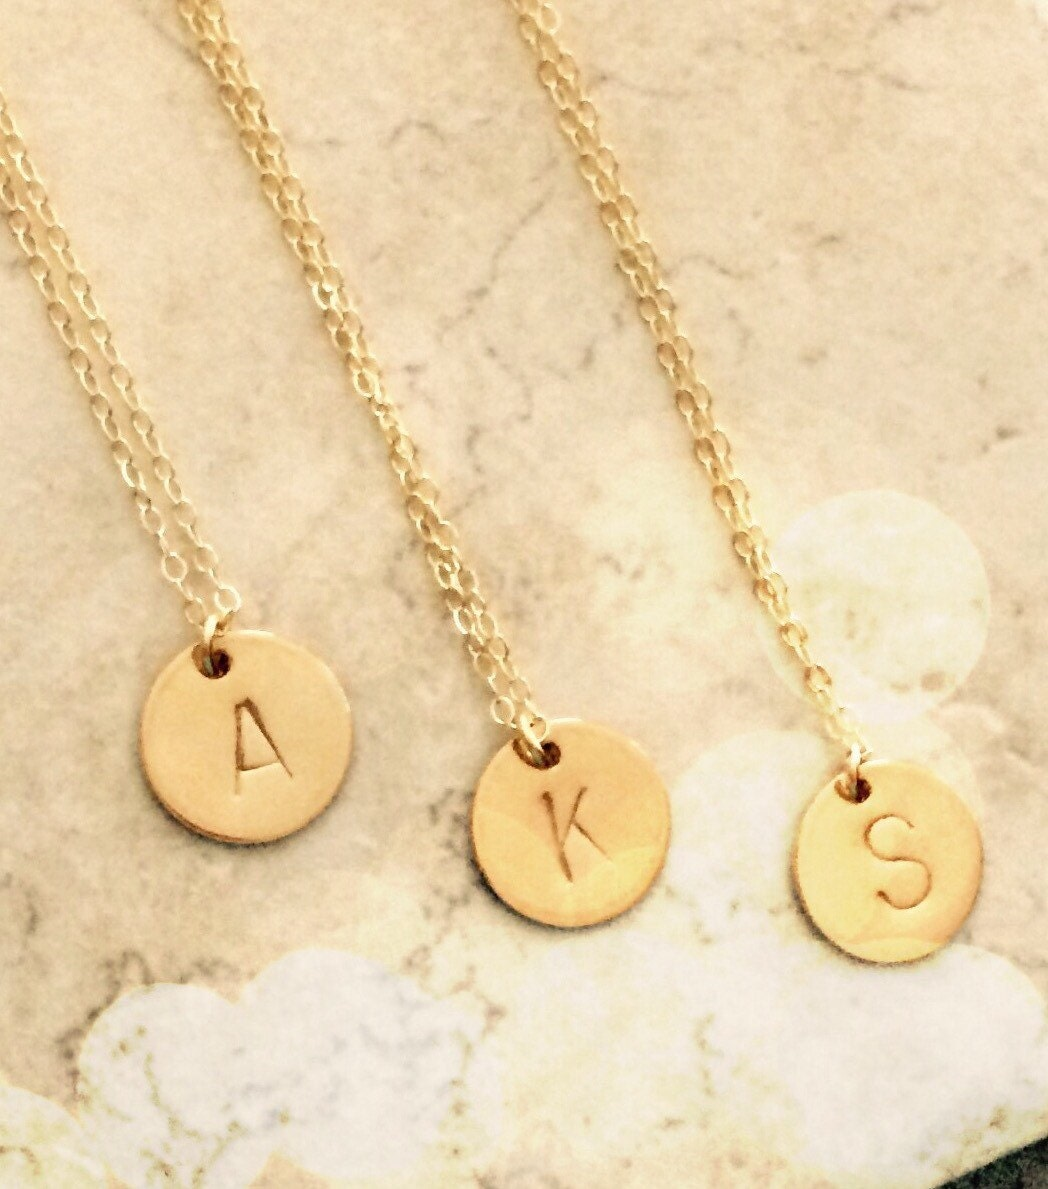 gold initial necklace pendant necklace personalized necklace. Black Bedroom Furniture Sets. Home Design Ideas